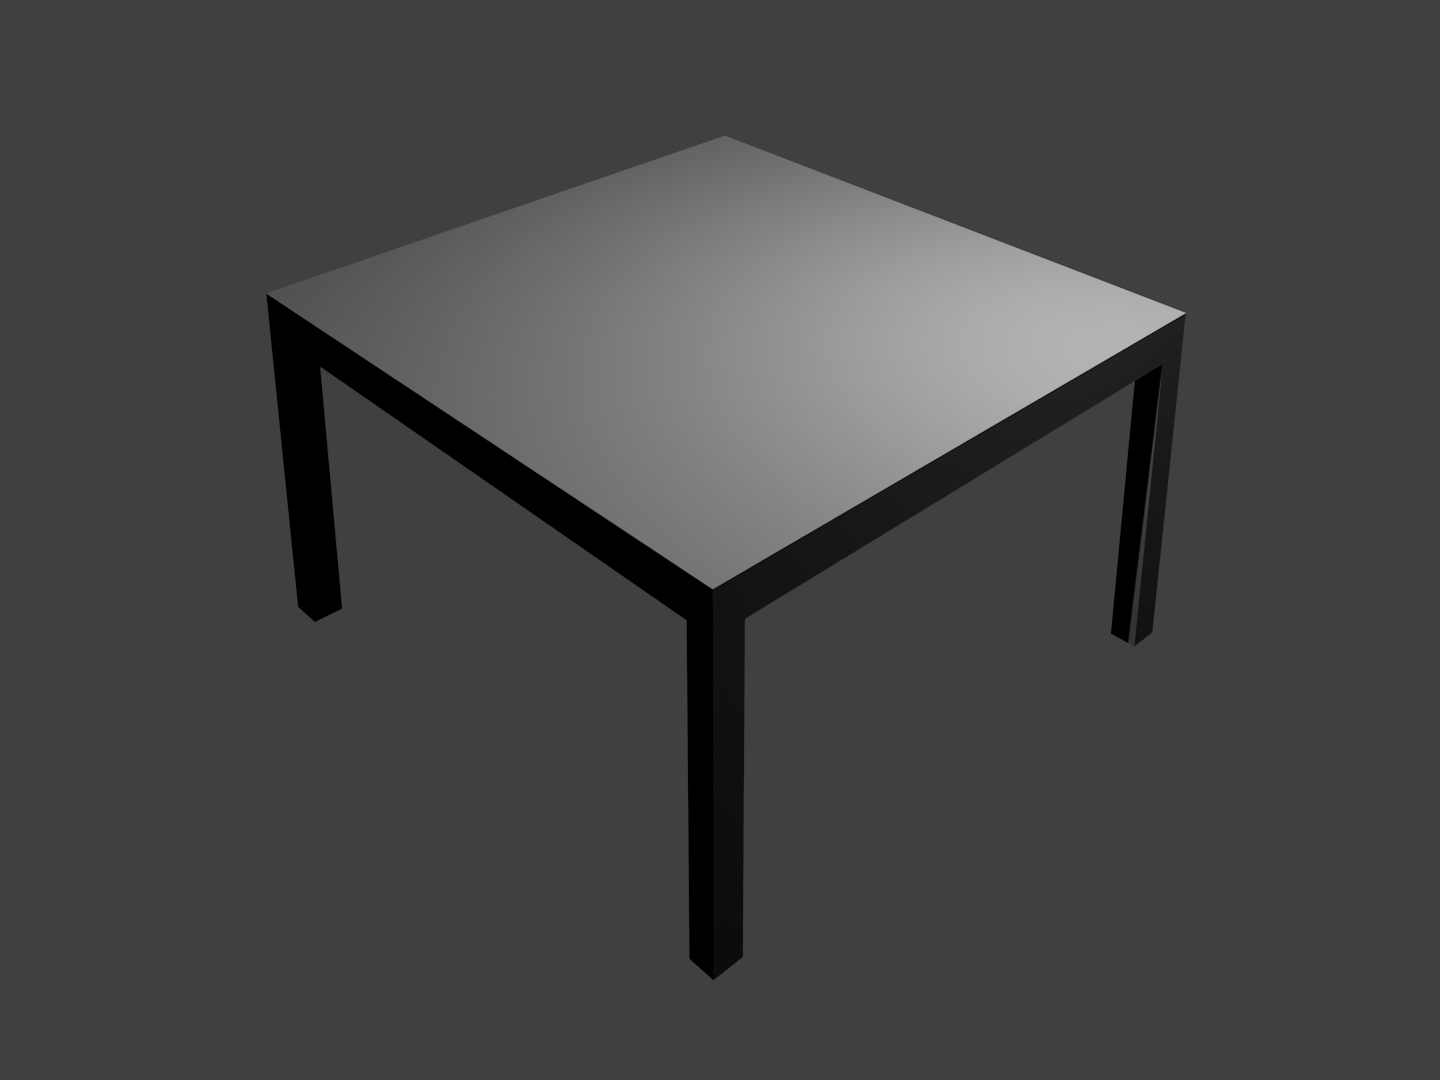 Table.png Download free STL file Basic Table • 3D printing model, Zubbo3